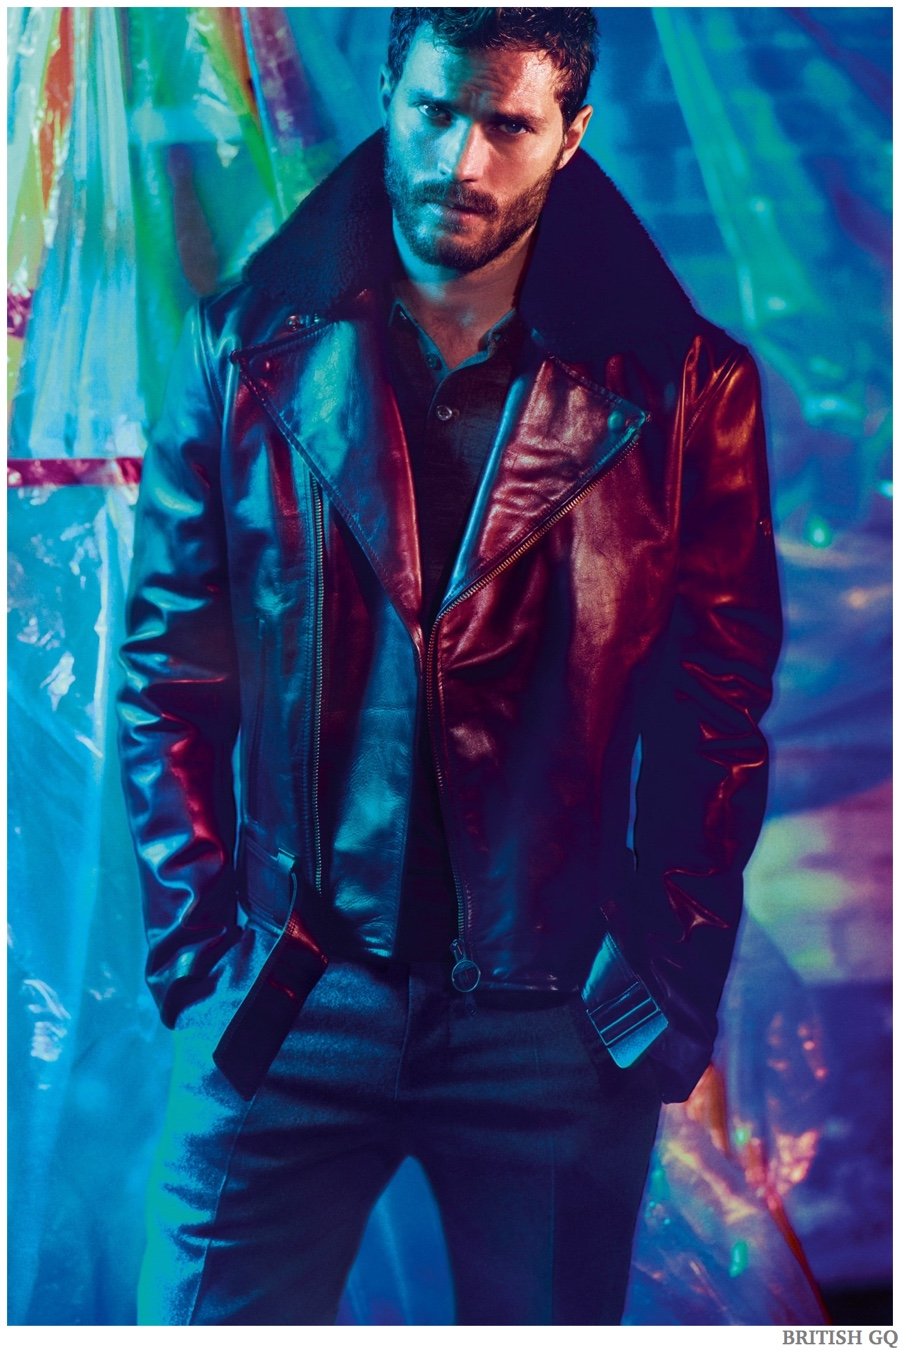 Jamie Dornan Poses for British GQ February 2015 Shoot, Talks Filming 'Fifty Shades of Grey' Sex Scenes